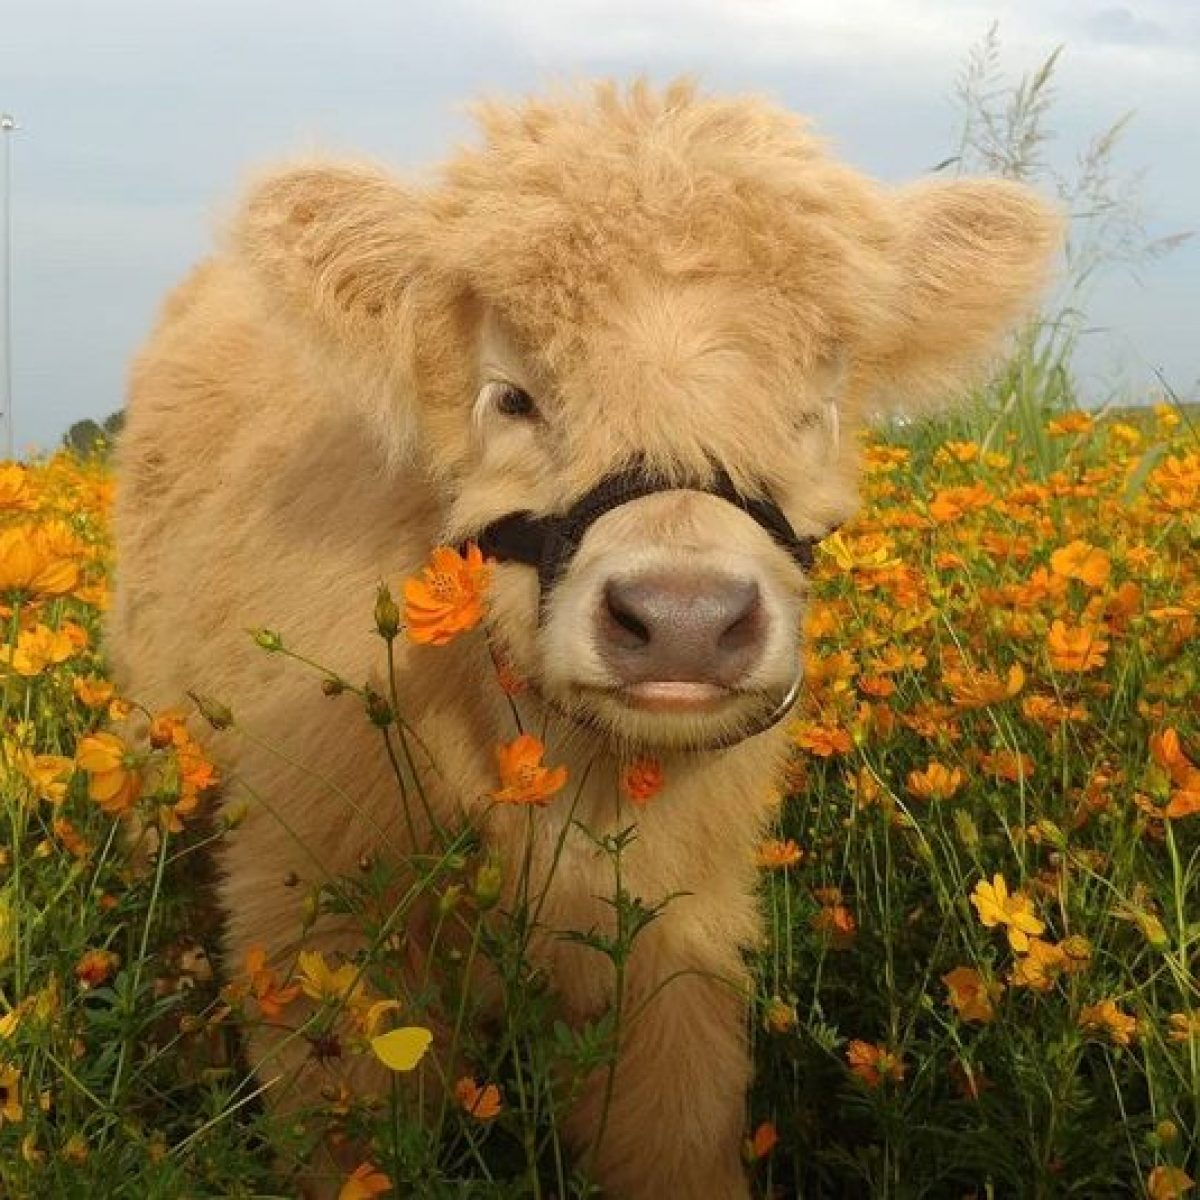 Fluffy Mini Cows Are The New Pet Trend – And Perhaps, The Best Choice!    Cookist.com